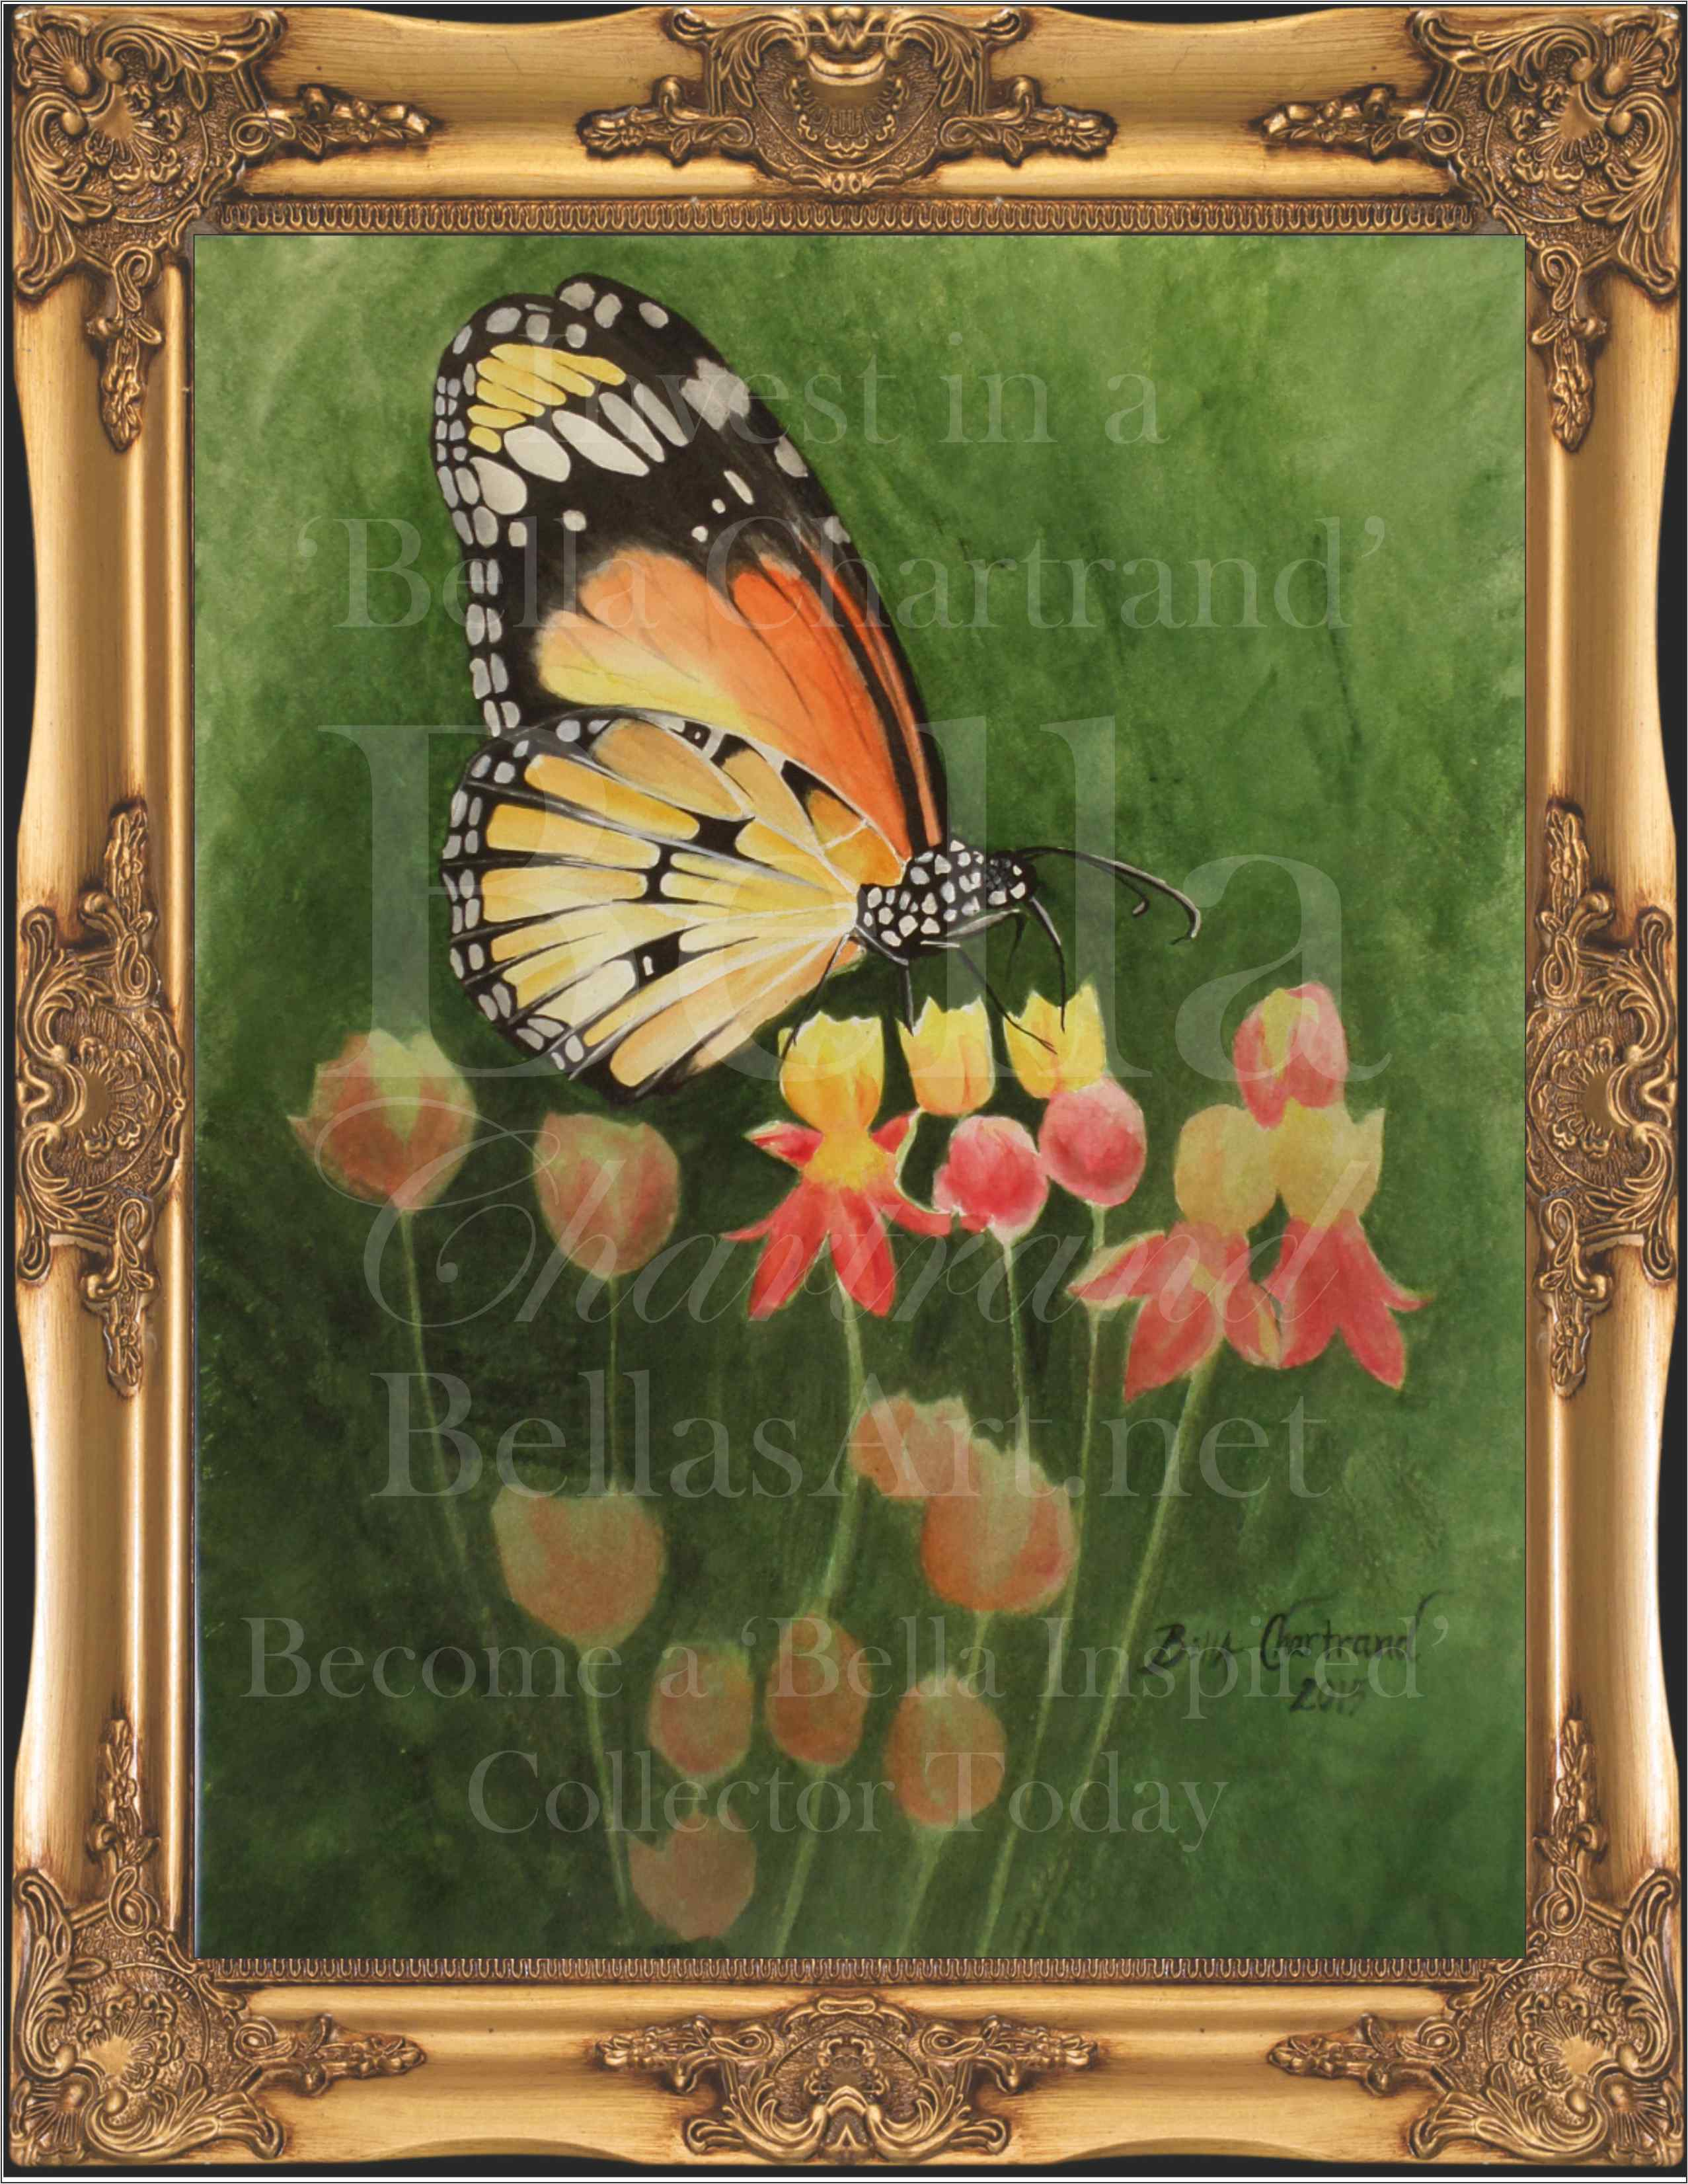 """""""Monarch Butterfly"""" from Bella Inspired Butterfly Collection by Bella Chartrand from Utopia USA"""